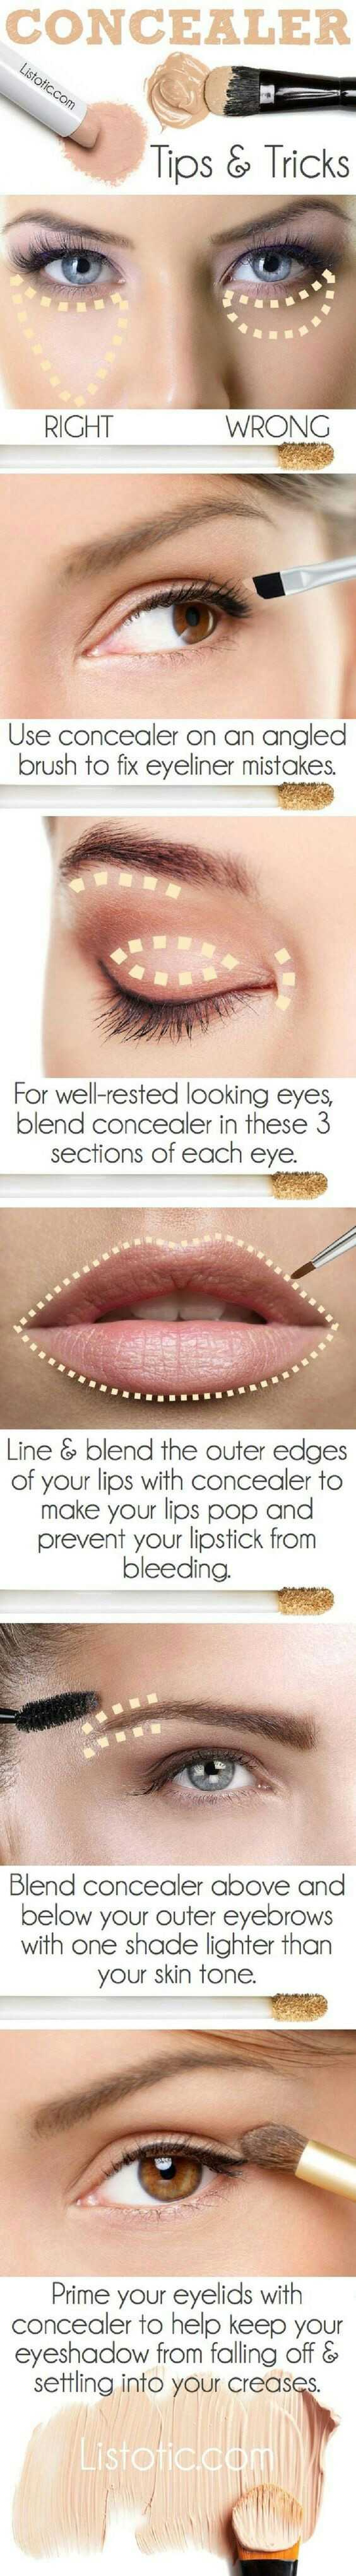 मेकअप टिप्स - CONCEALER Listotic . com Tips & Tricks RIGHT WRONG Use concealer on an angled brush to fix eyeliner mistakes . For well - rested looking eyes , blend concealer in these 3 sections of each eye . BEBIS 21 Line & blend the outer edges of your lips with concealer to make your lips pop and prevent your lipstick from bleeding . Blend concealer above and below your outer eyebrows with one shade lighter than your skin tone . Prime your eyelids with concealer to help keep your eyeshadow from falling off & settling into your creases Listotic . com - ShareChat